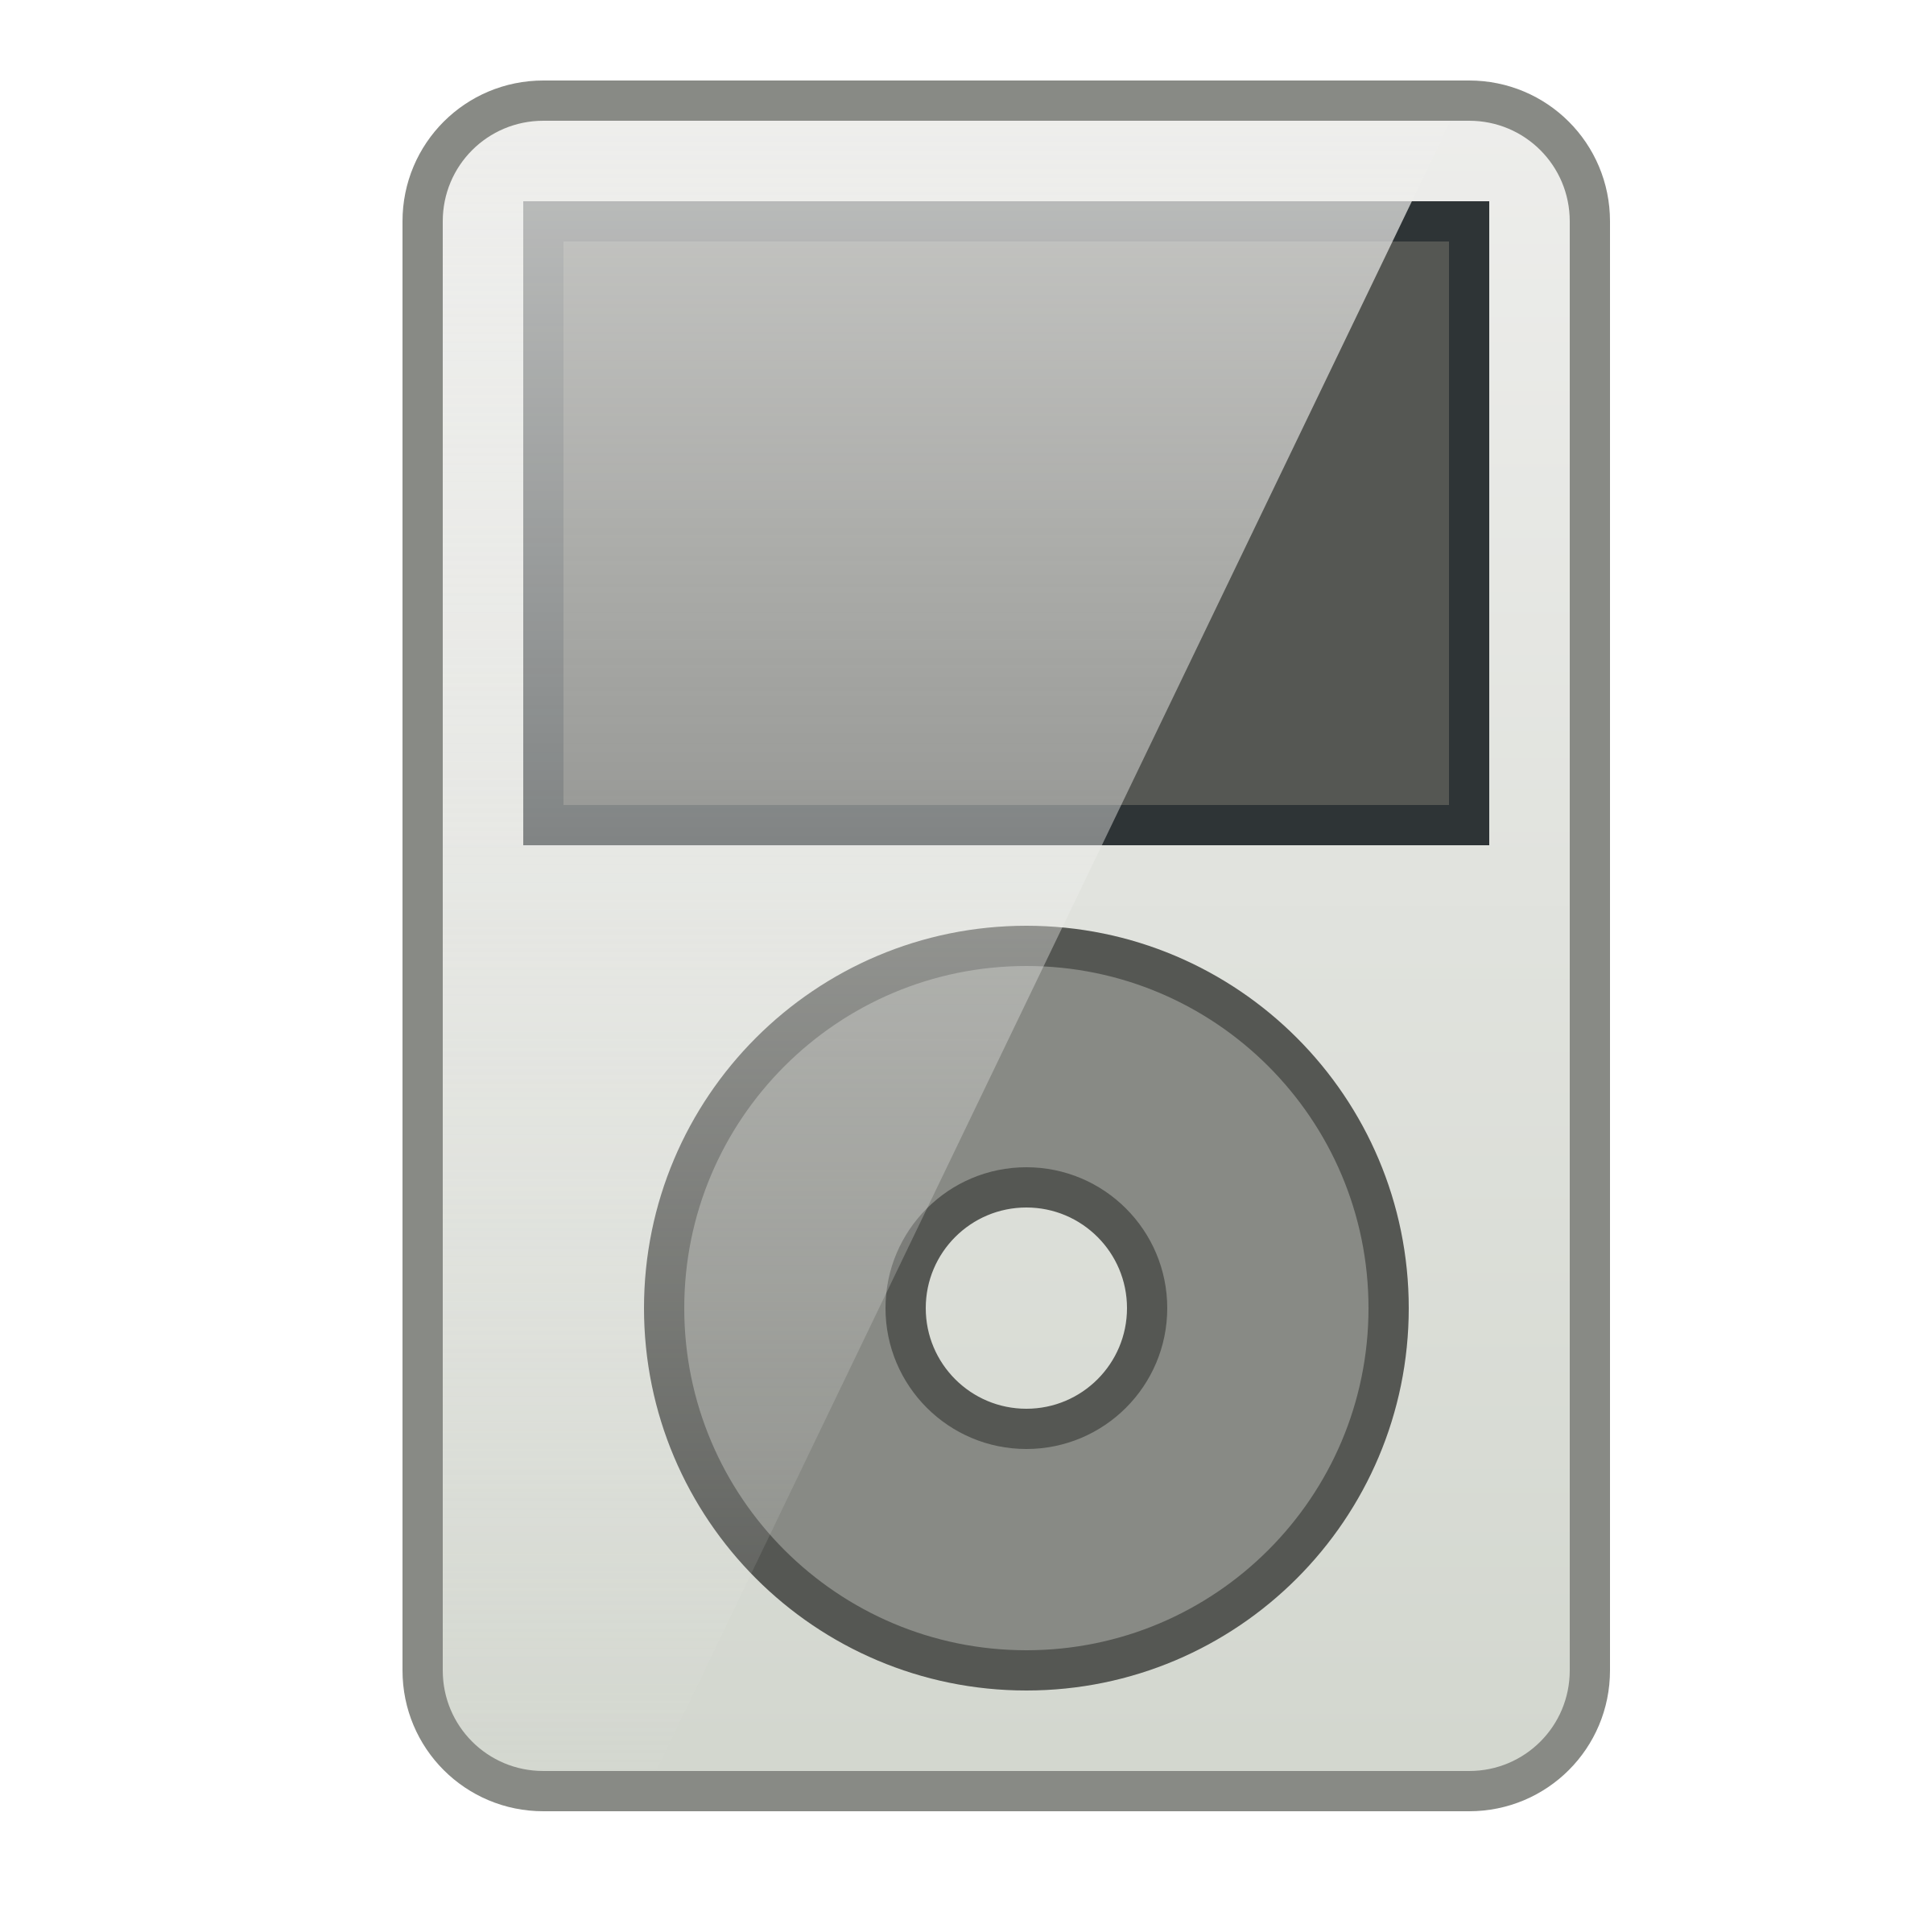 iPod Tango Icon by jhnri4